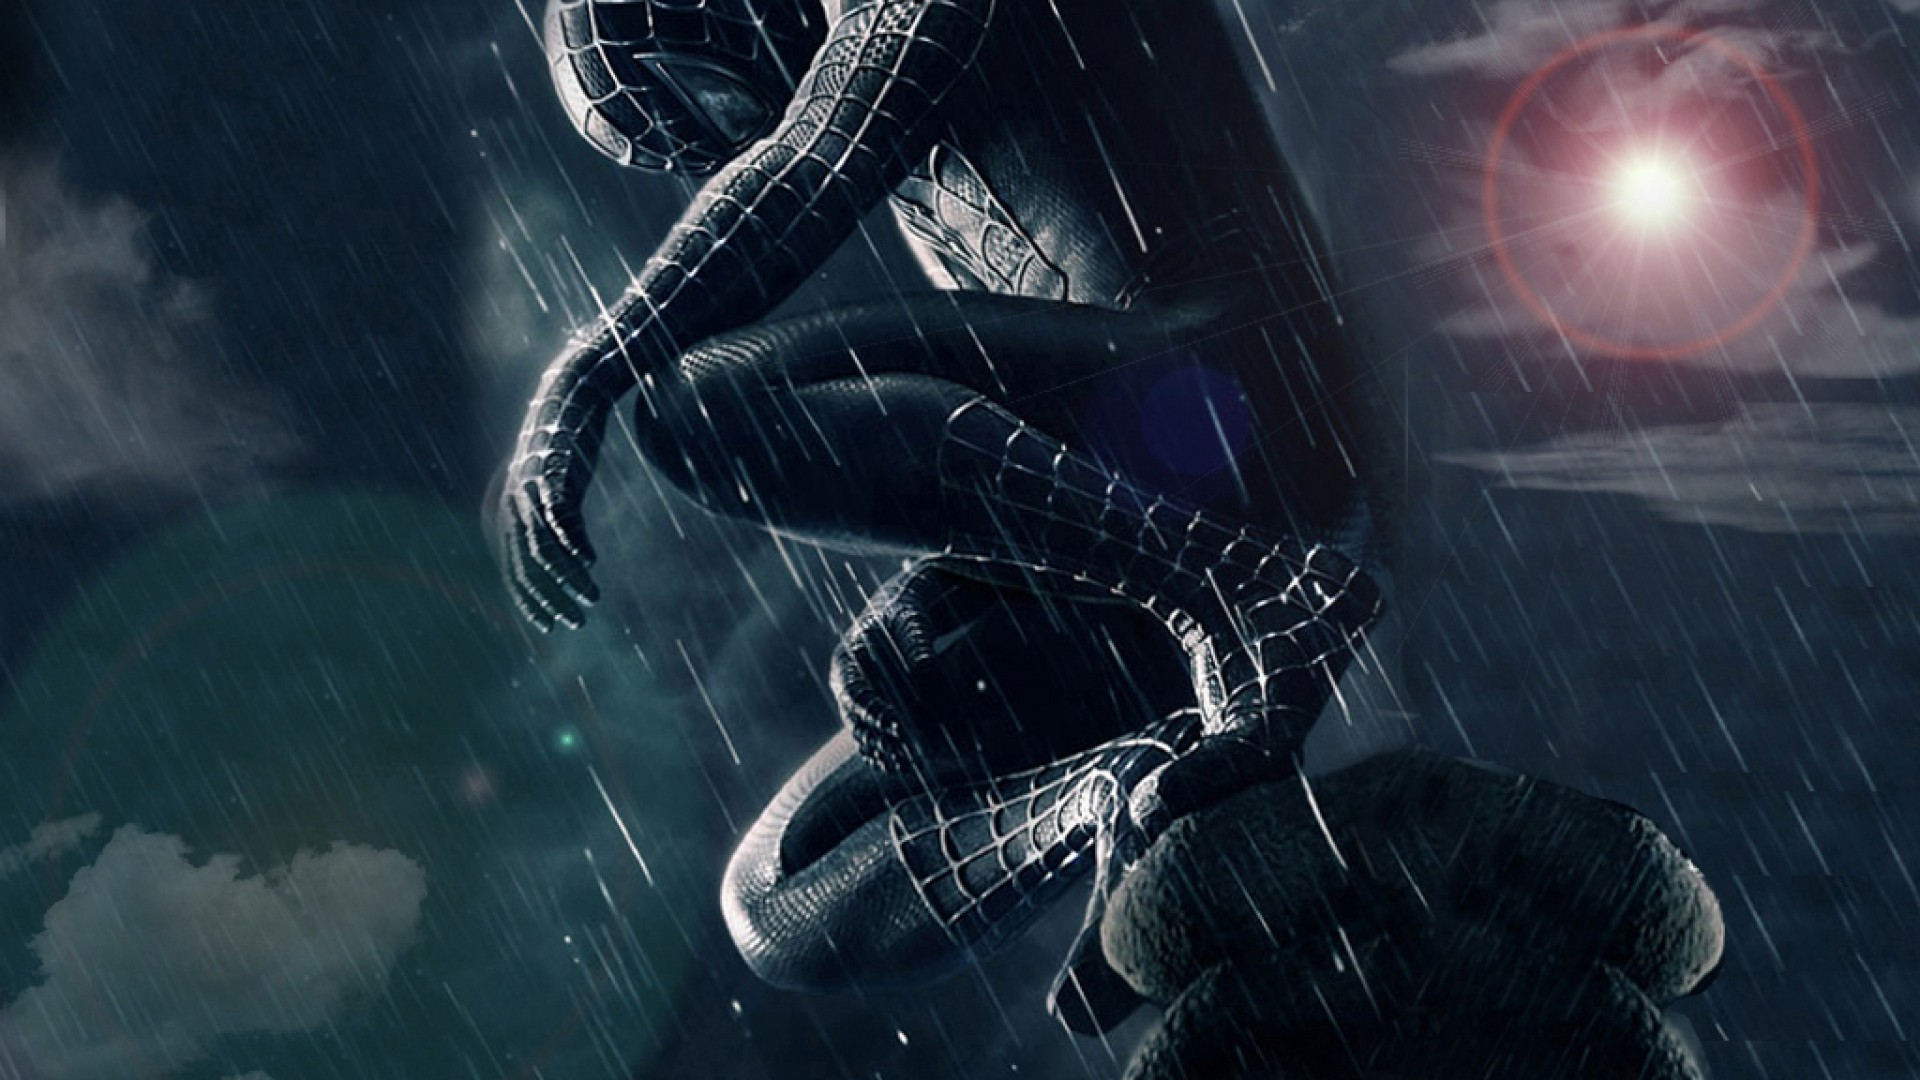 Spiderman Wallpaper 1080p Spiderman Photos with 23489wall.jpg